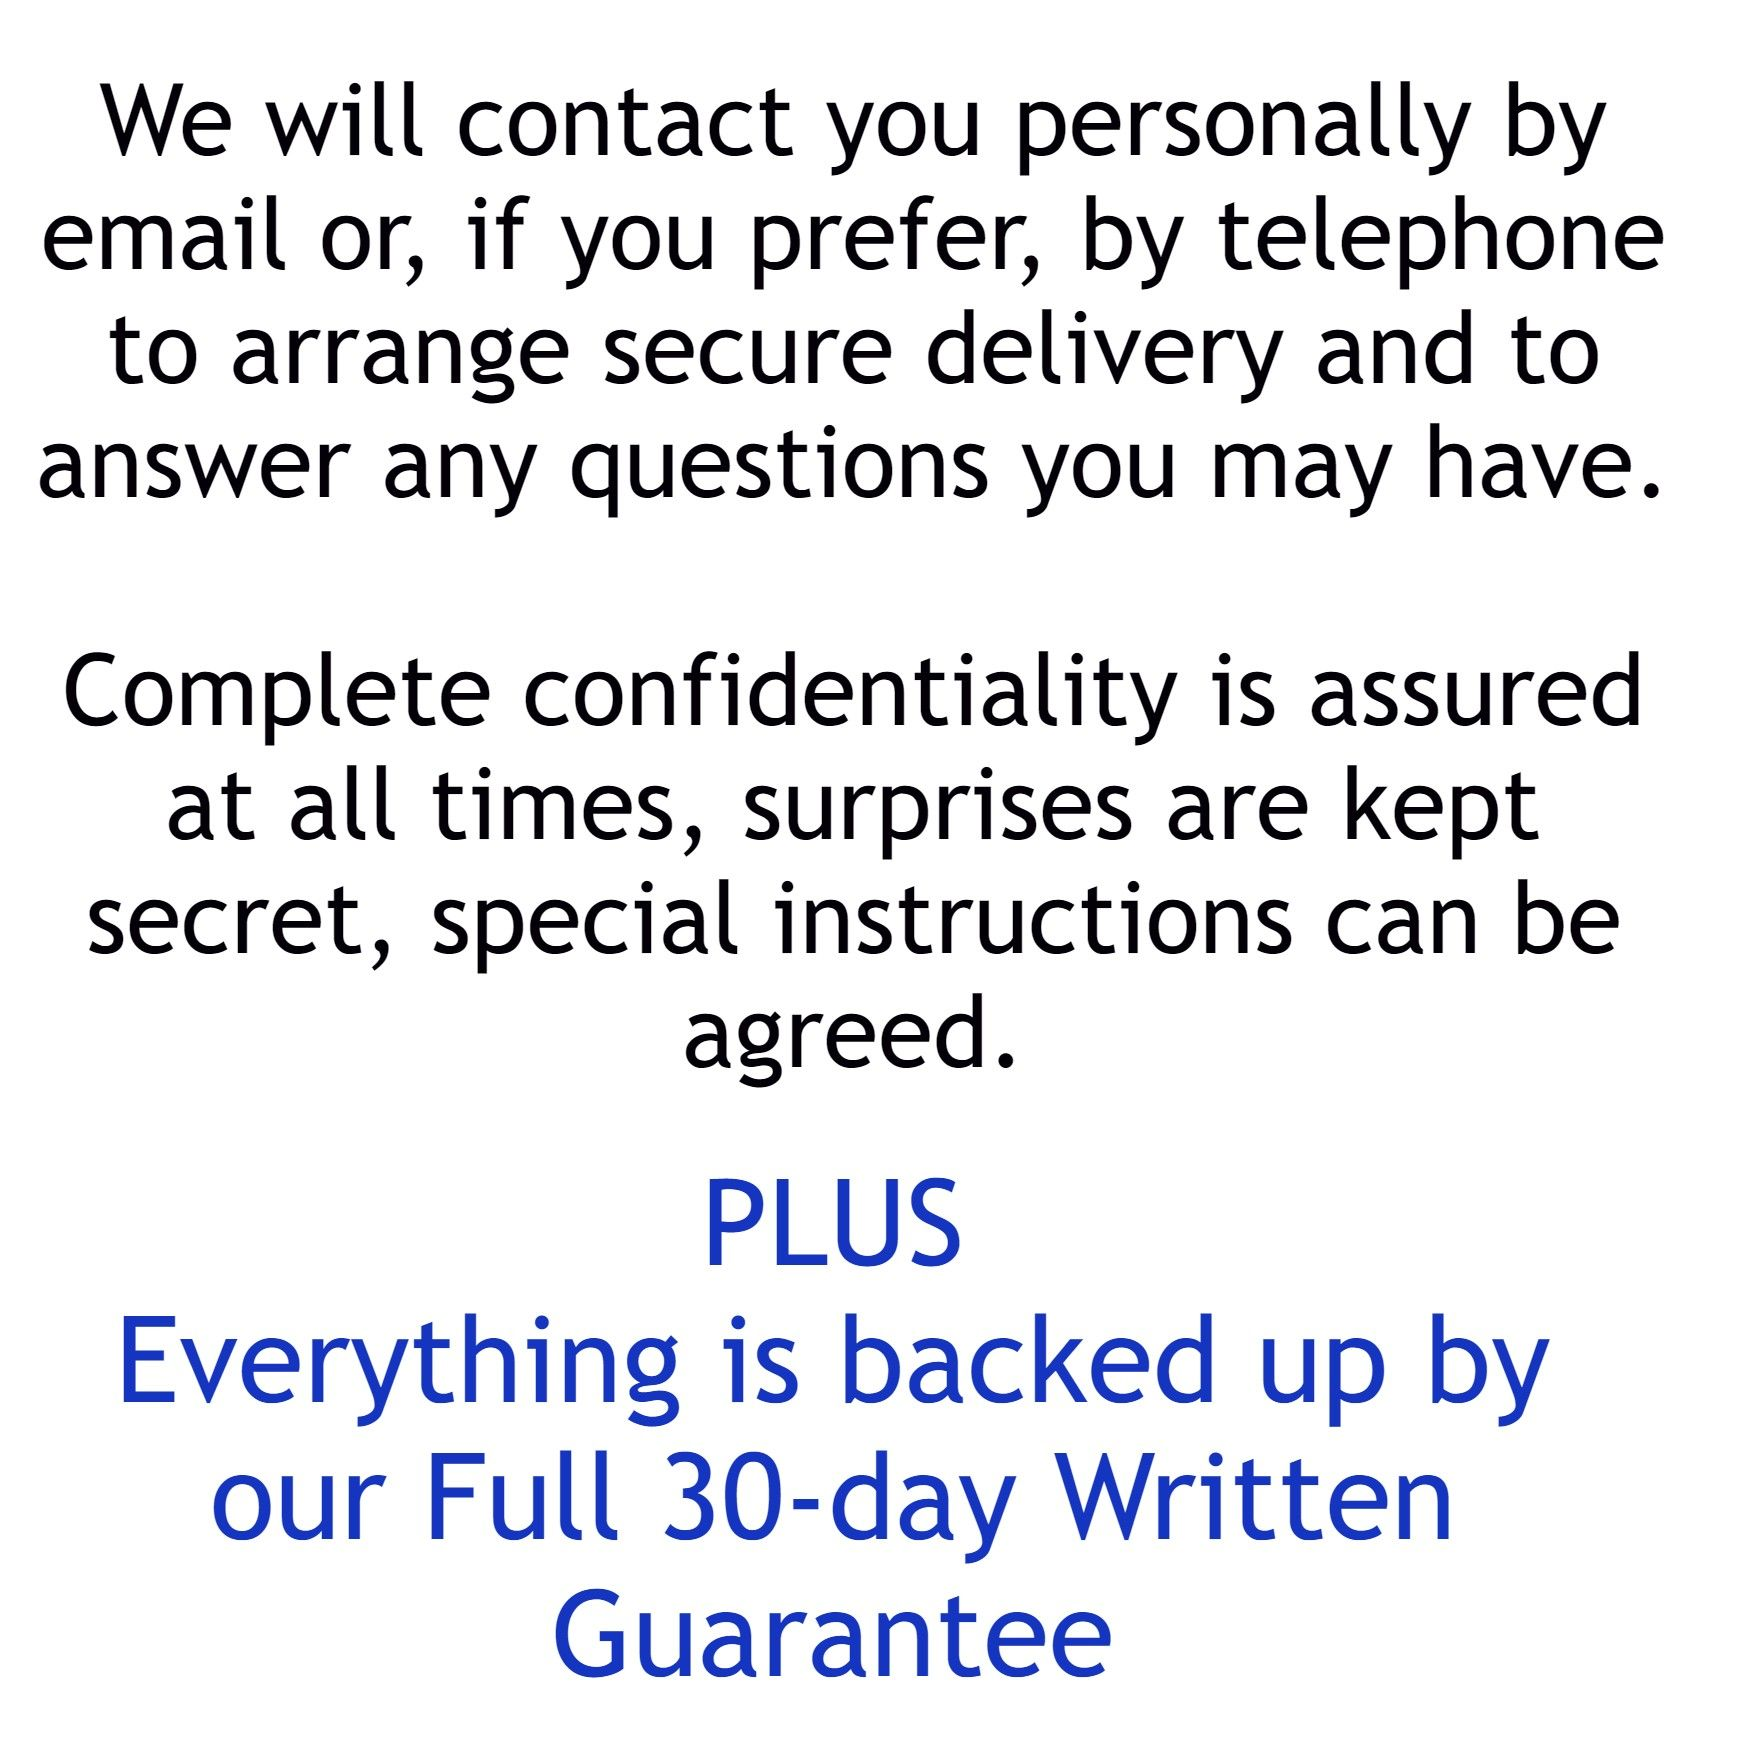 Personal Service and Guarantee